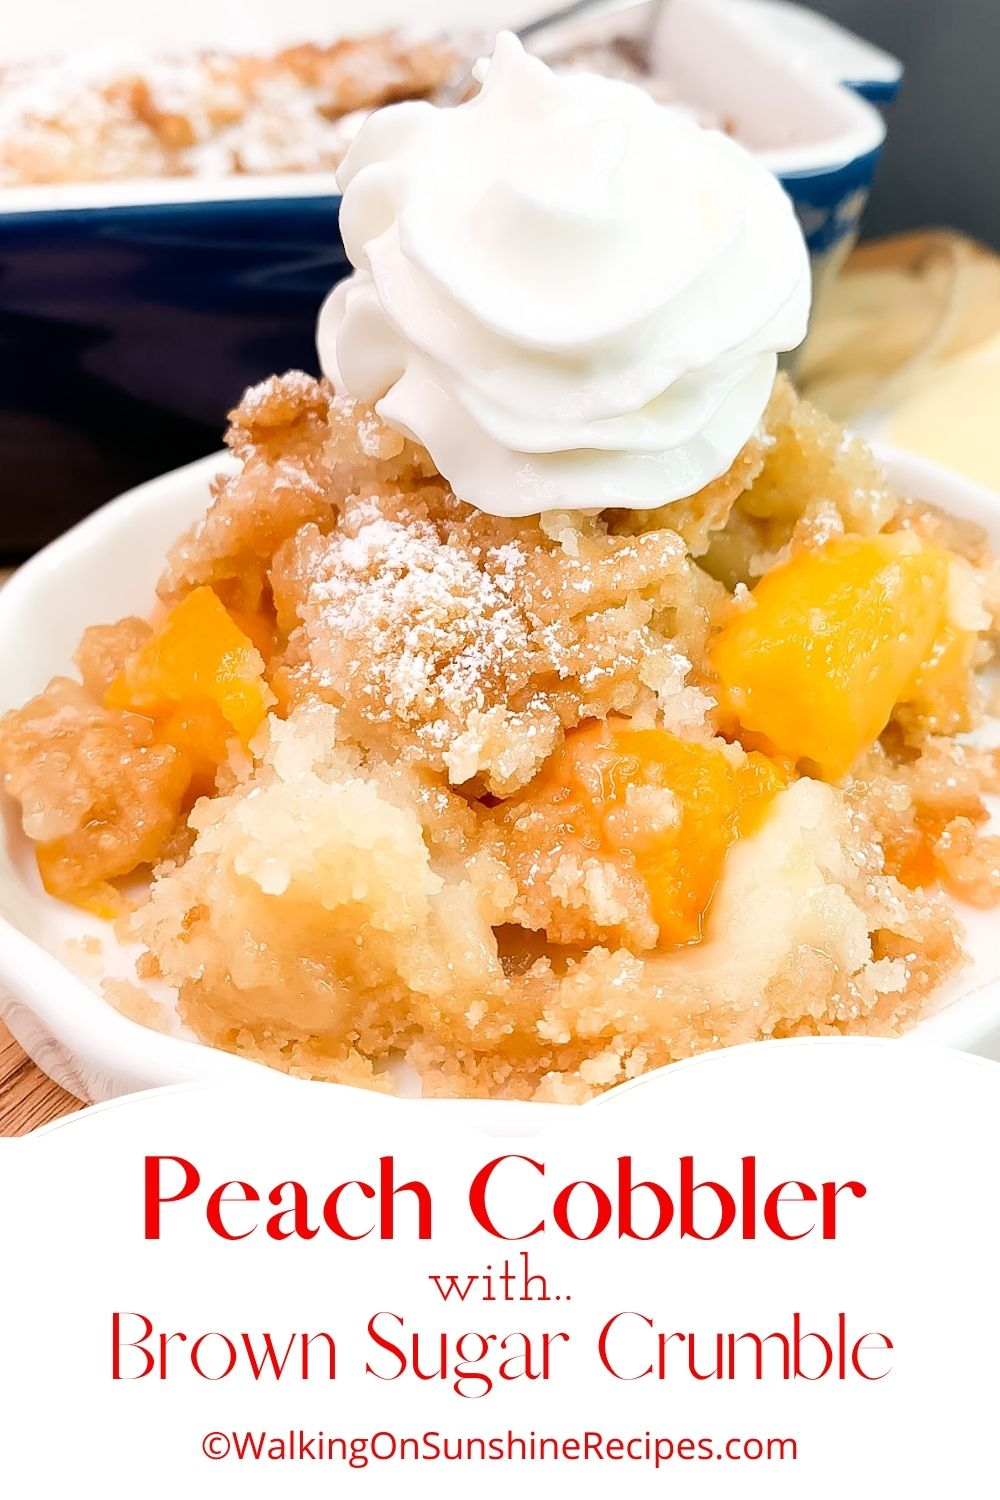 Peach cobbler with canned peaches with whipped cream.